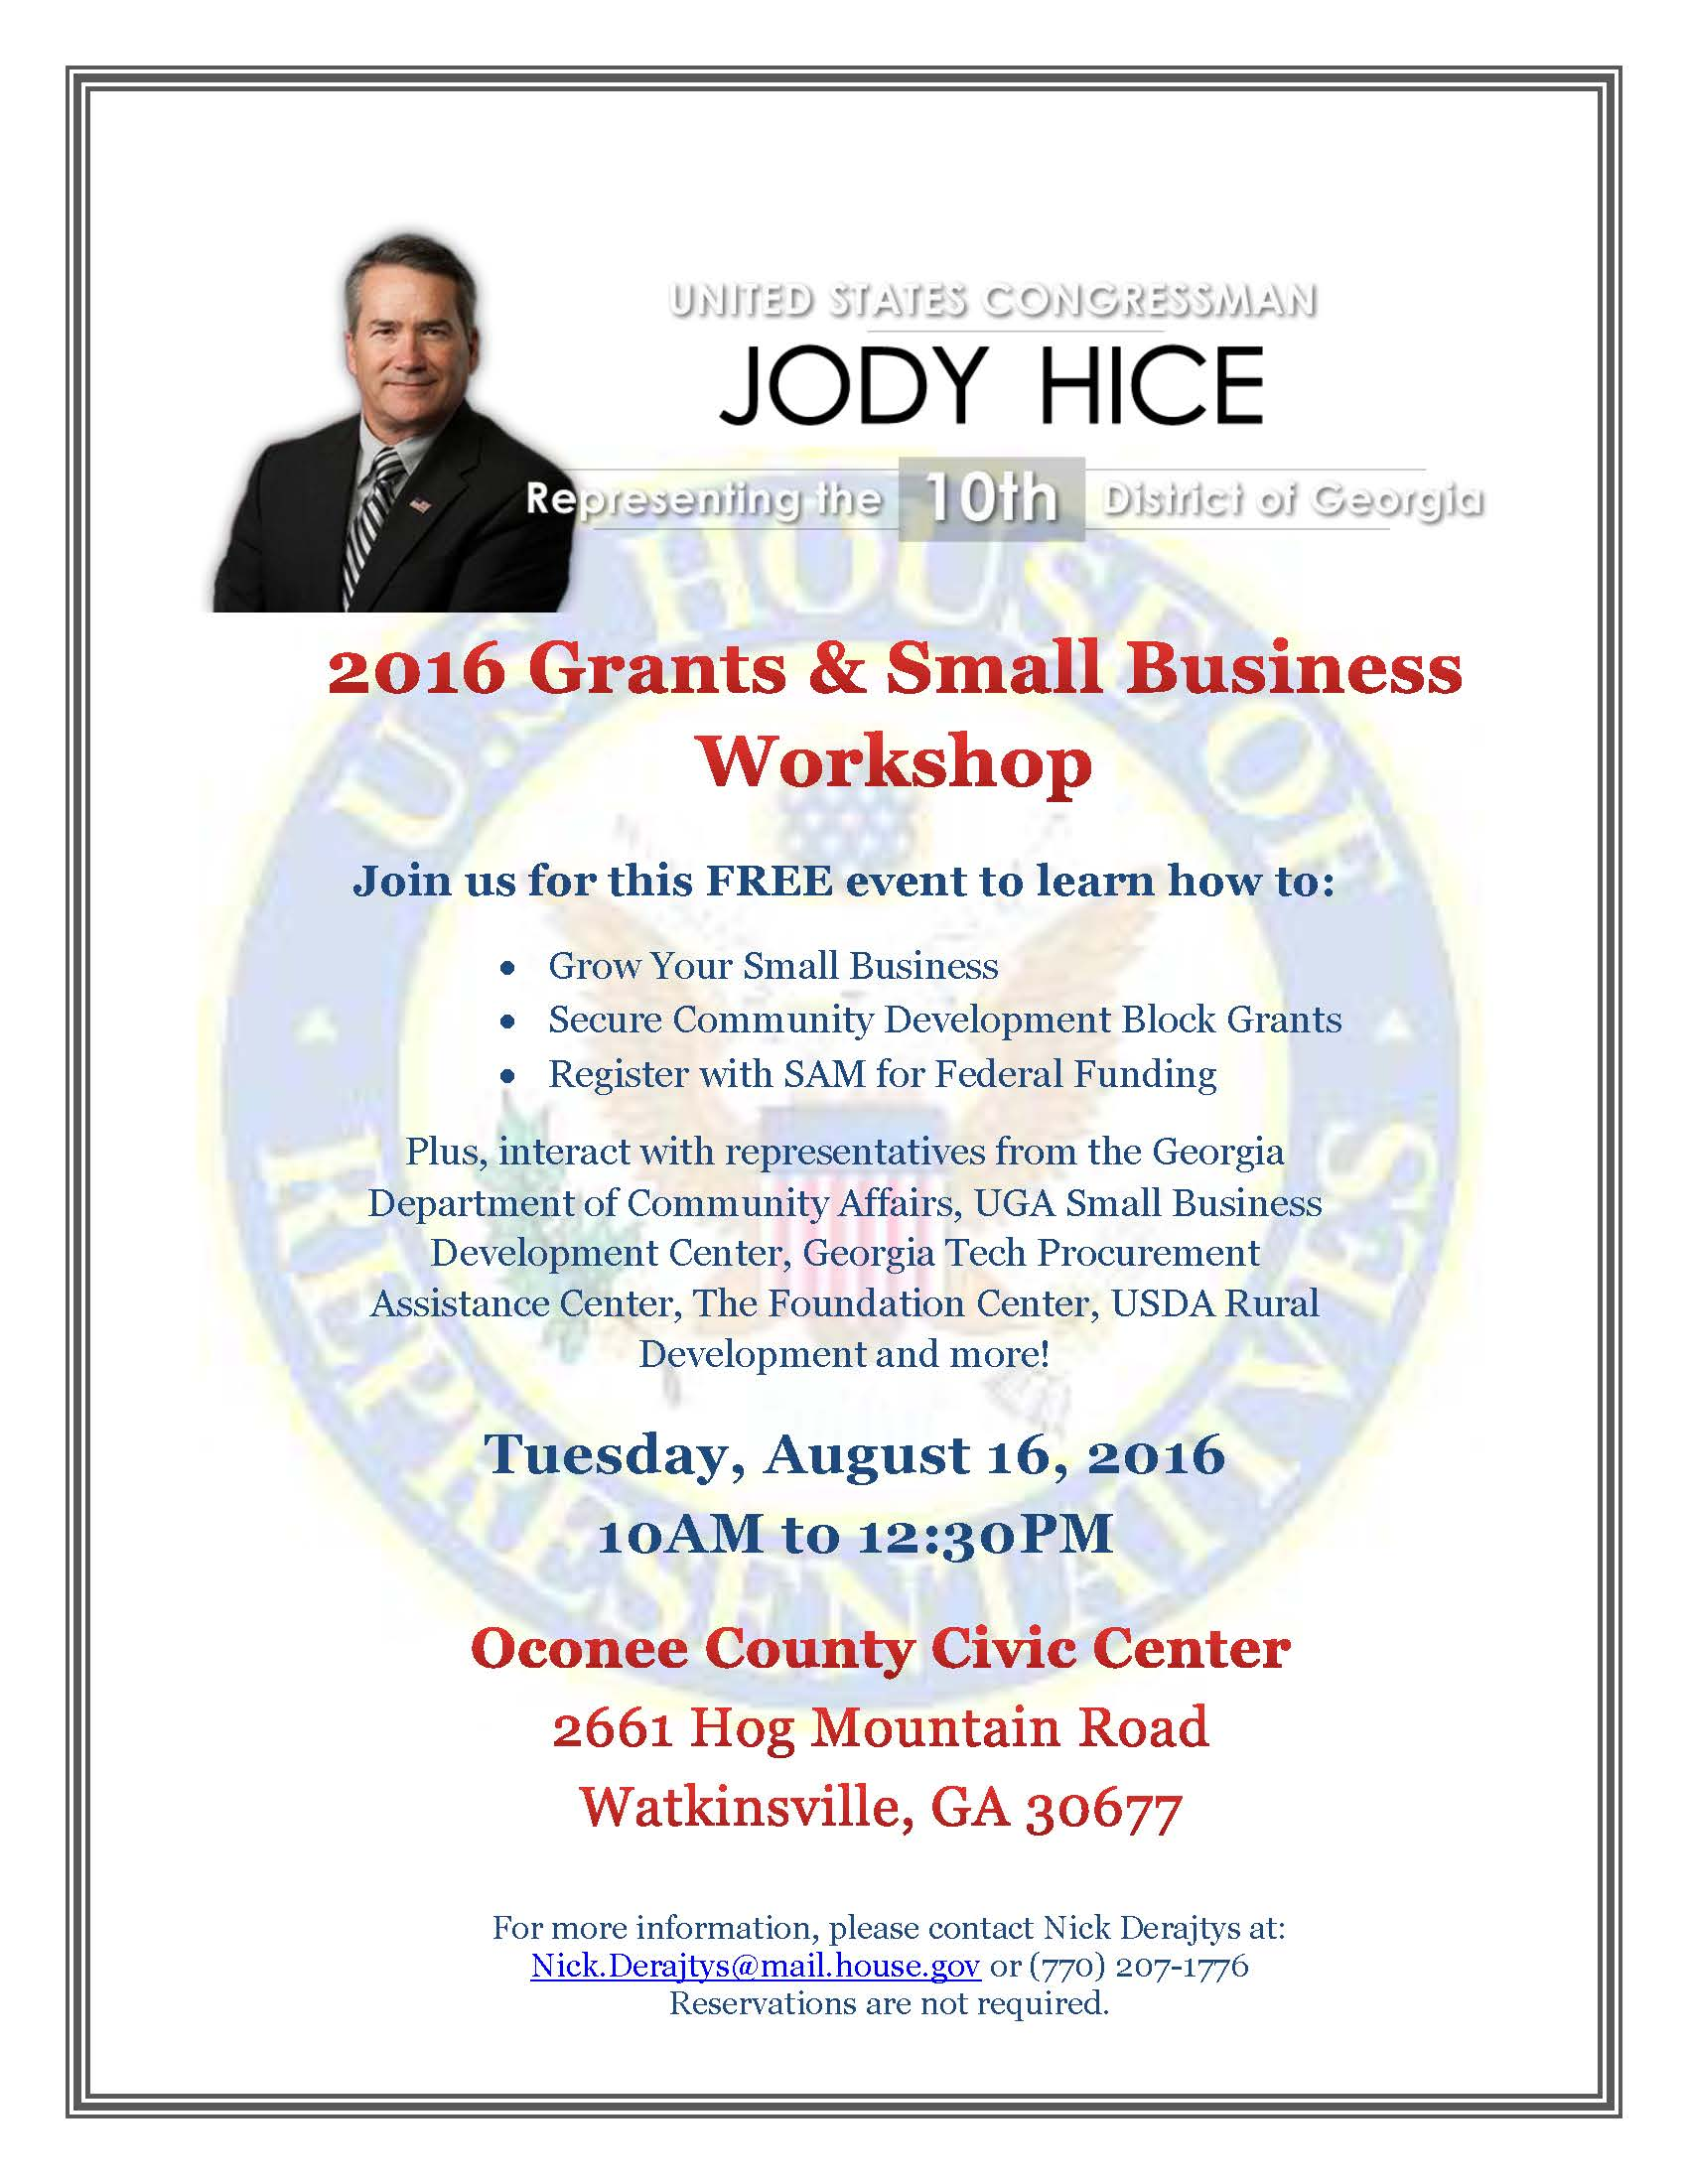 2016 Grants and Small Business Workshop Flyer